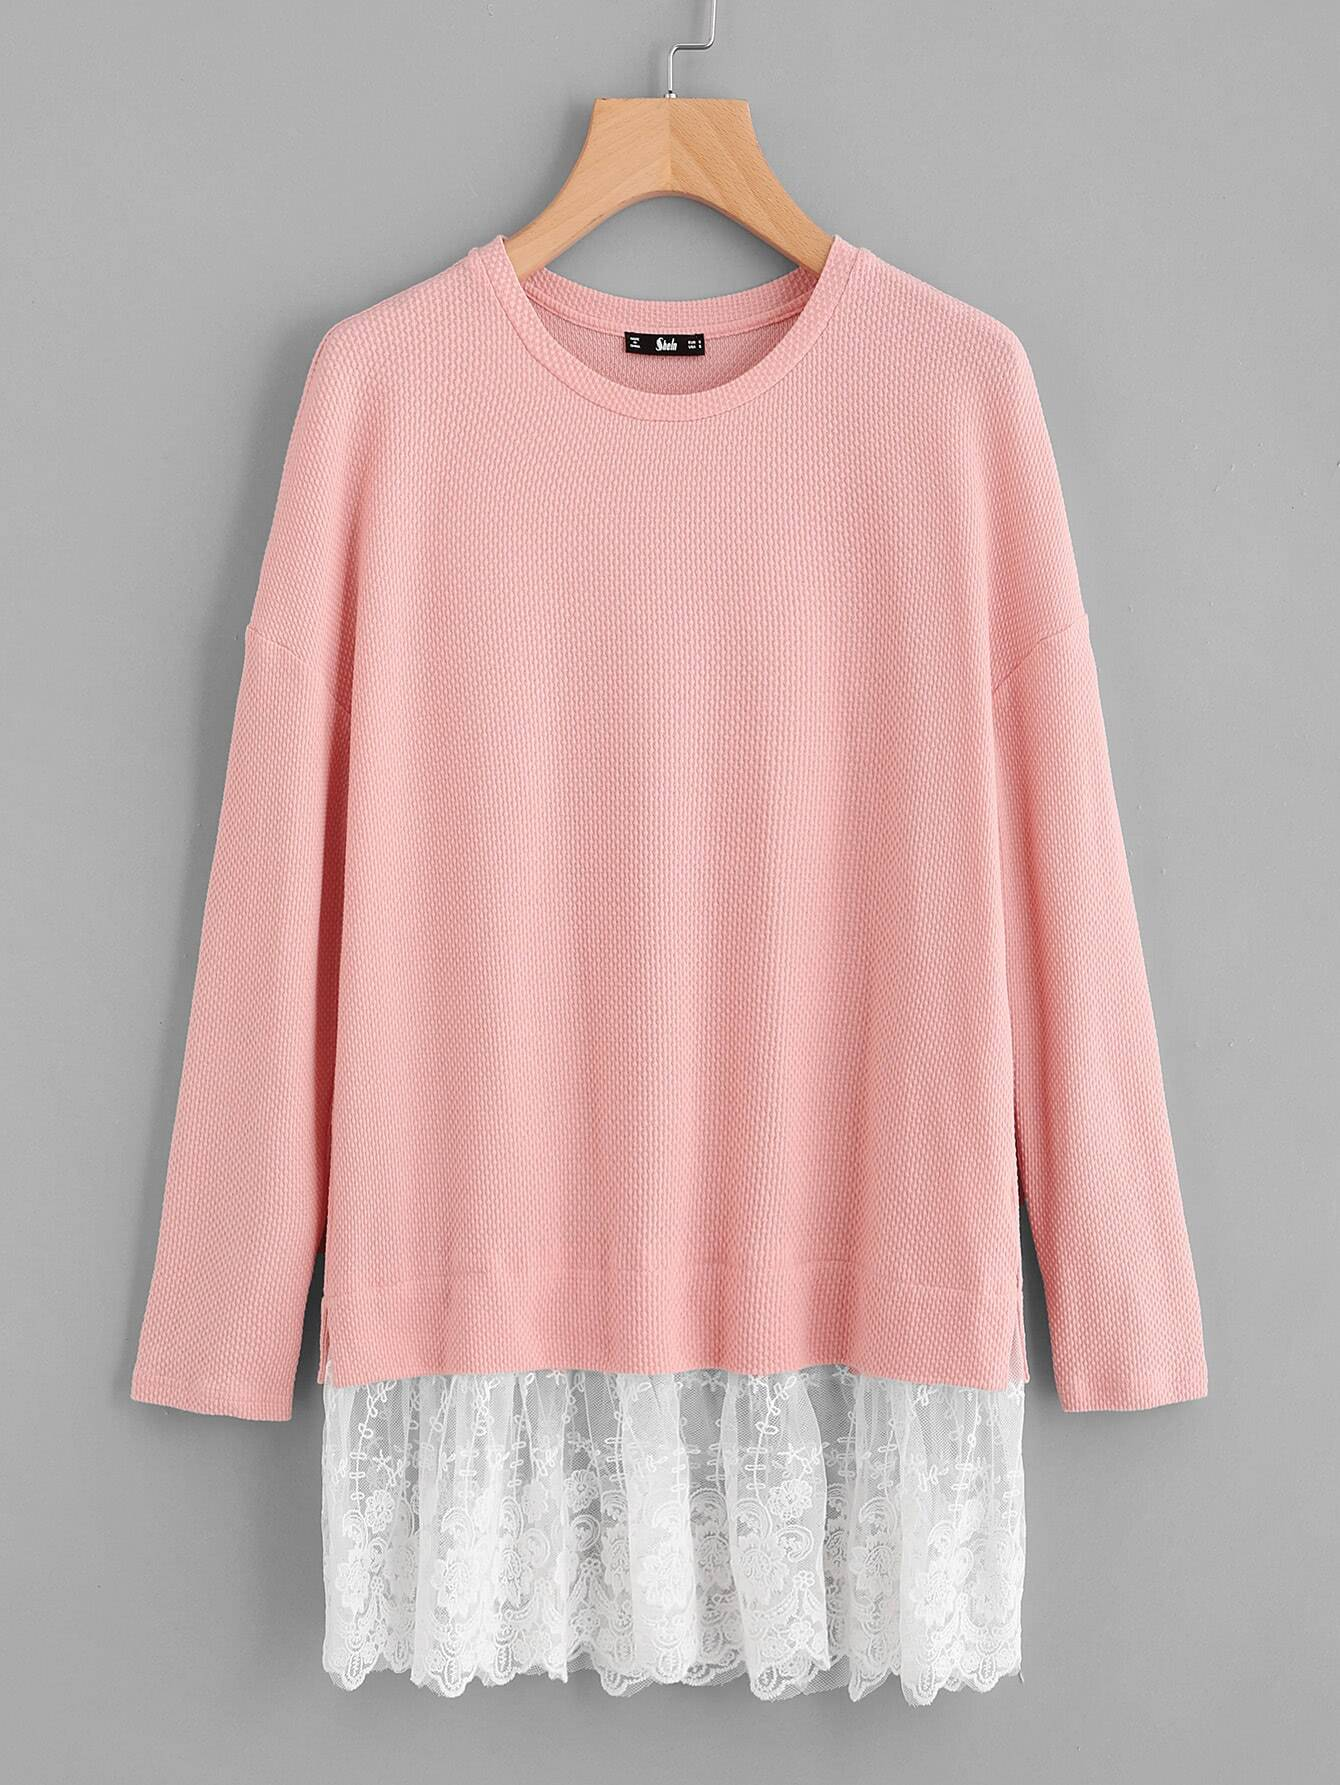 Contrast Lace Trim Textured Tee